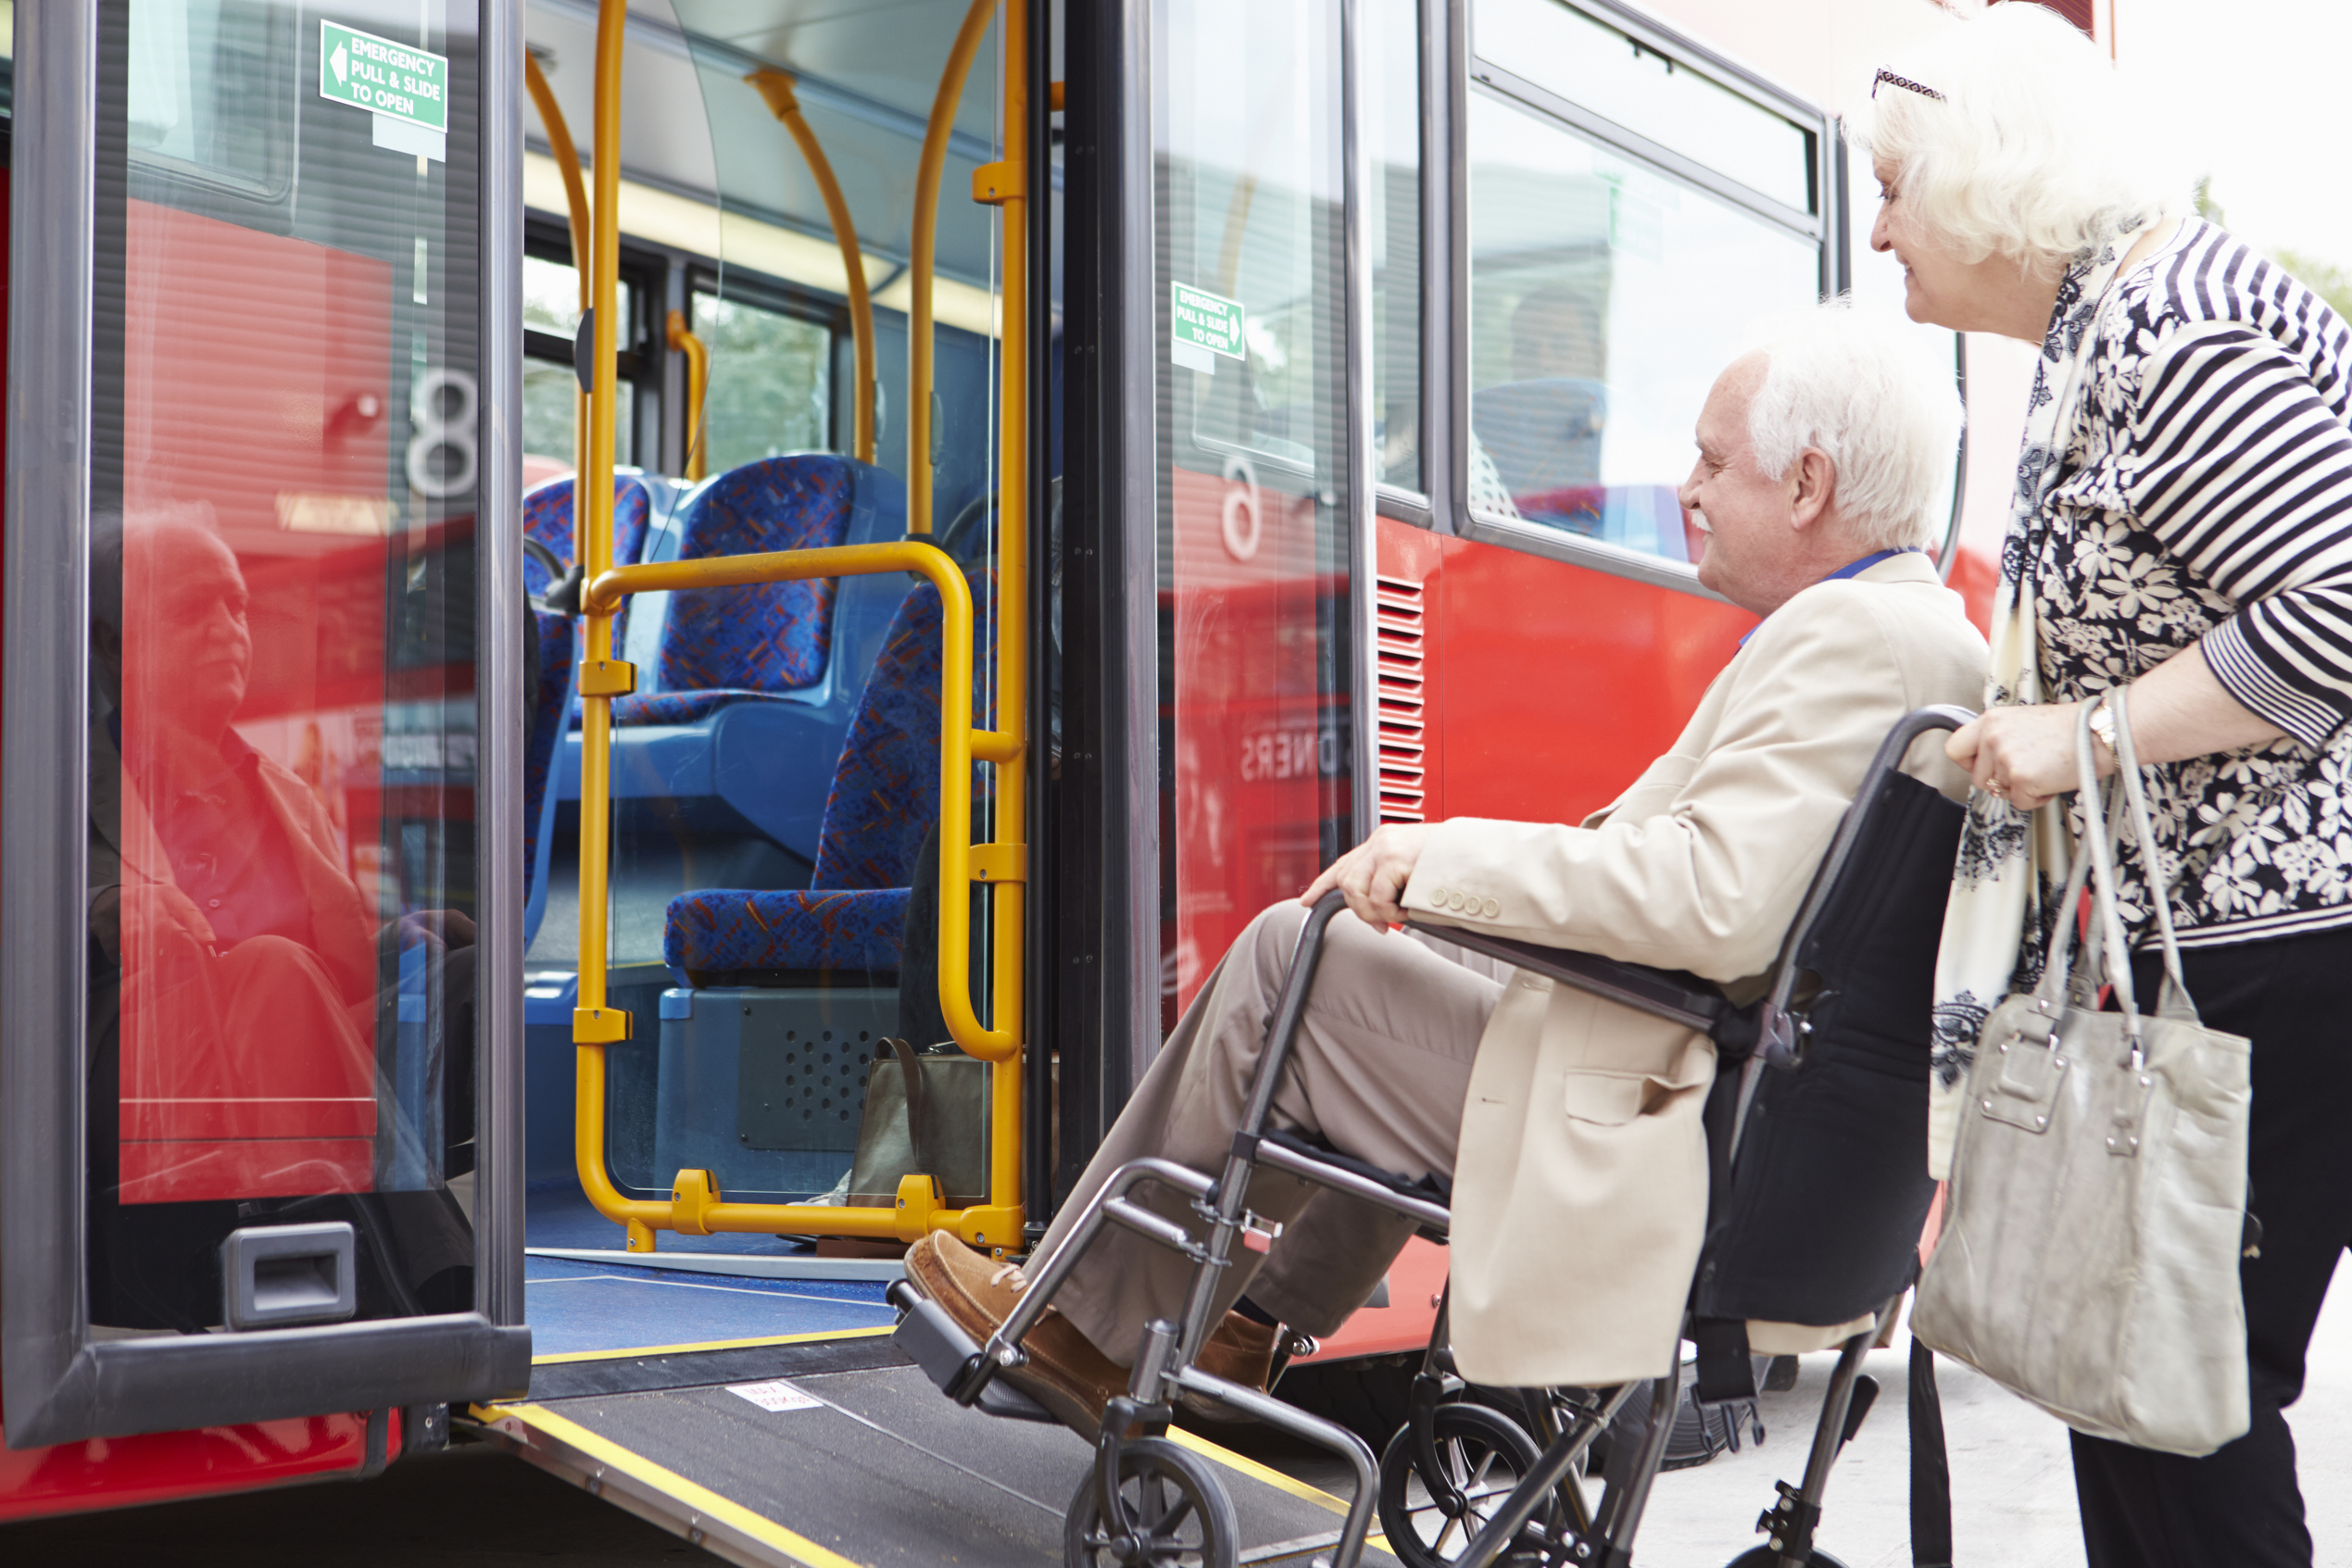 Birmingham to use smart tech to combat isolation among over-65s